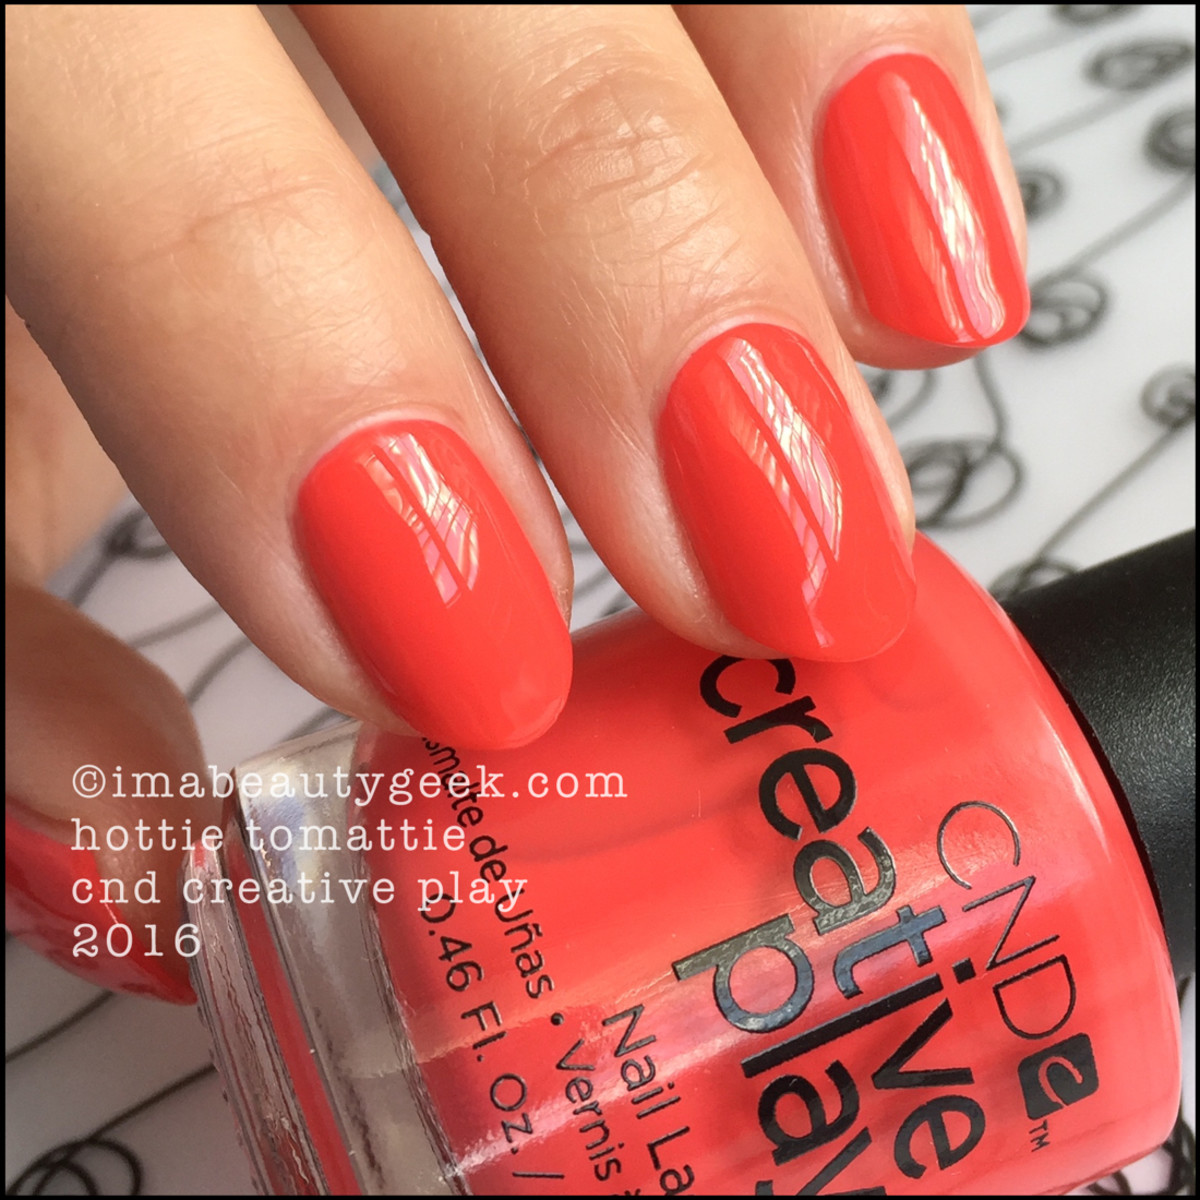 CND Creative Play Hottie Tomattie_CND Creative Play Nail Polish Swatches